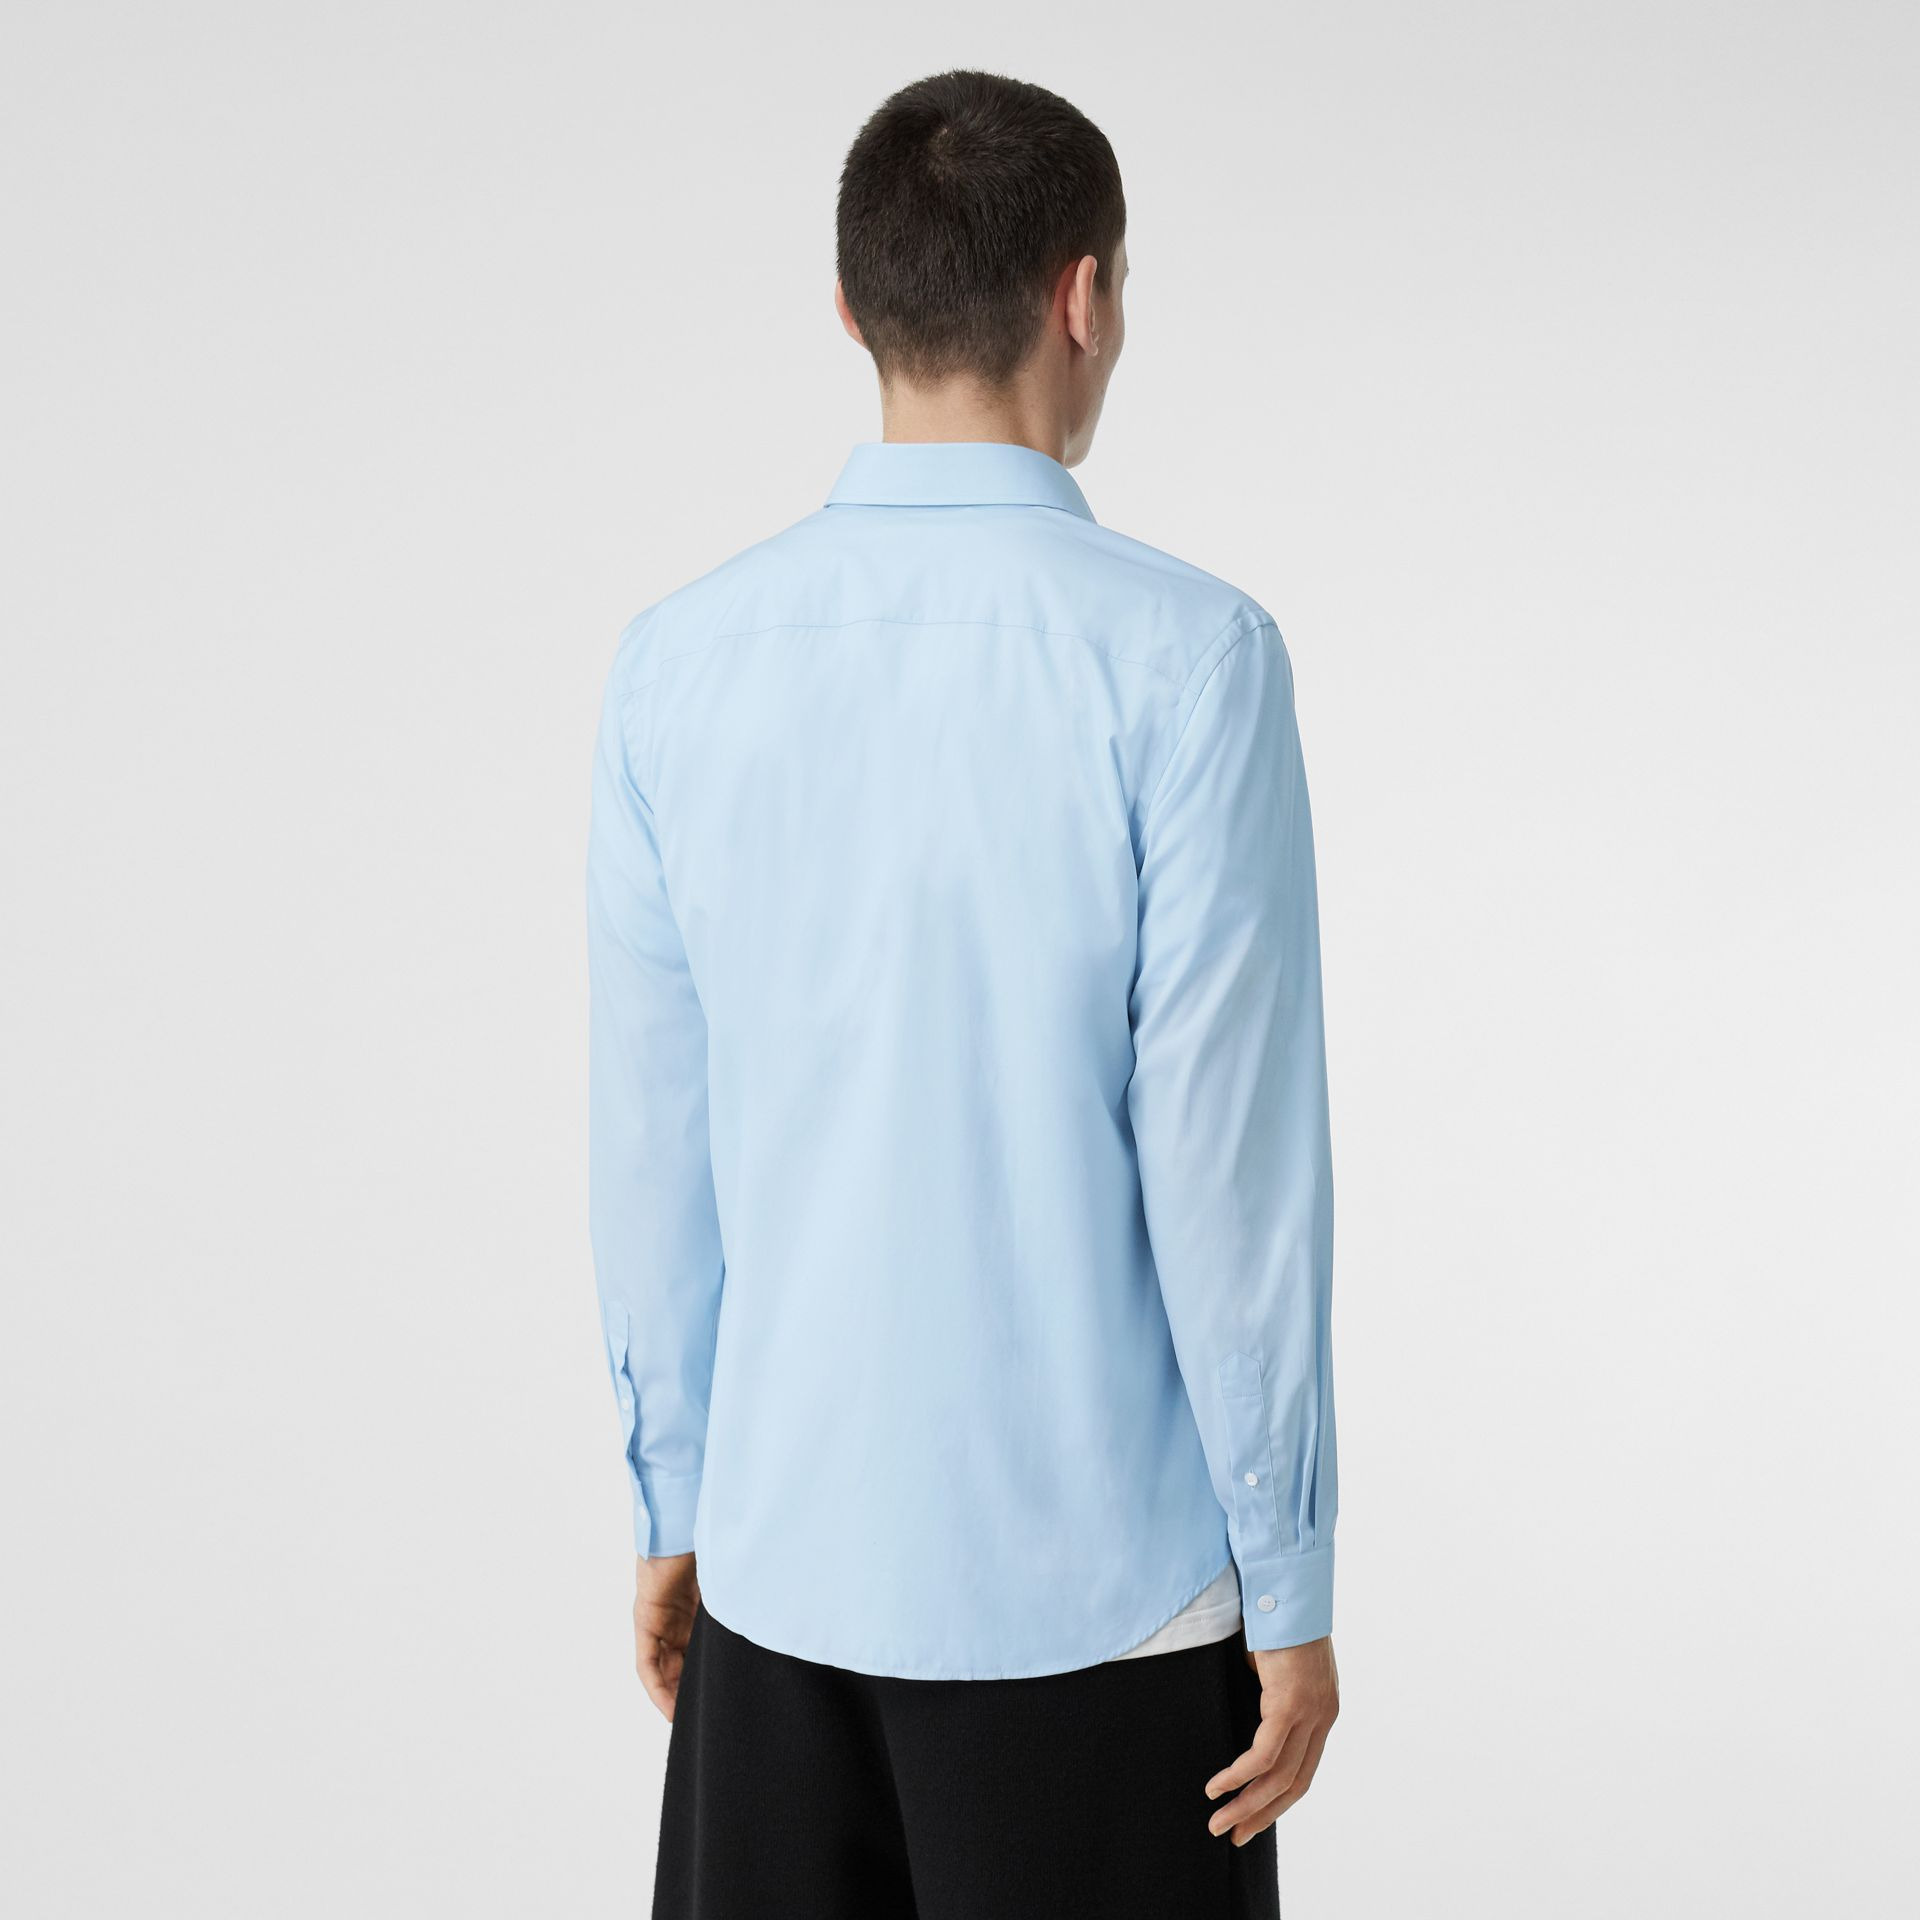 Monogram Motif Stretch Cotton Poplin Shirt in Pale Blue - Men | Burberry Hong Kong S.A.R - gallery image 2